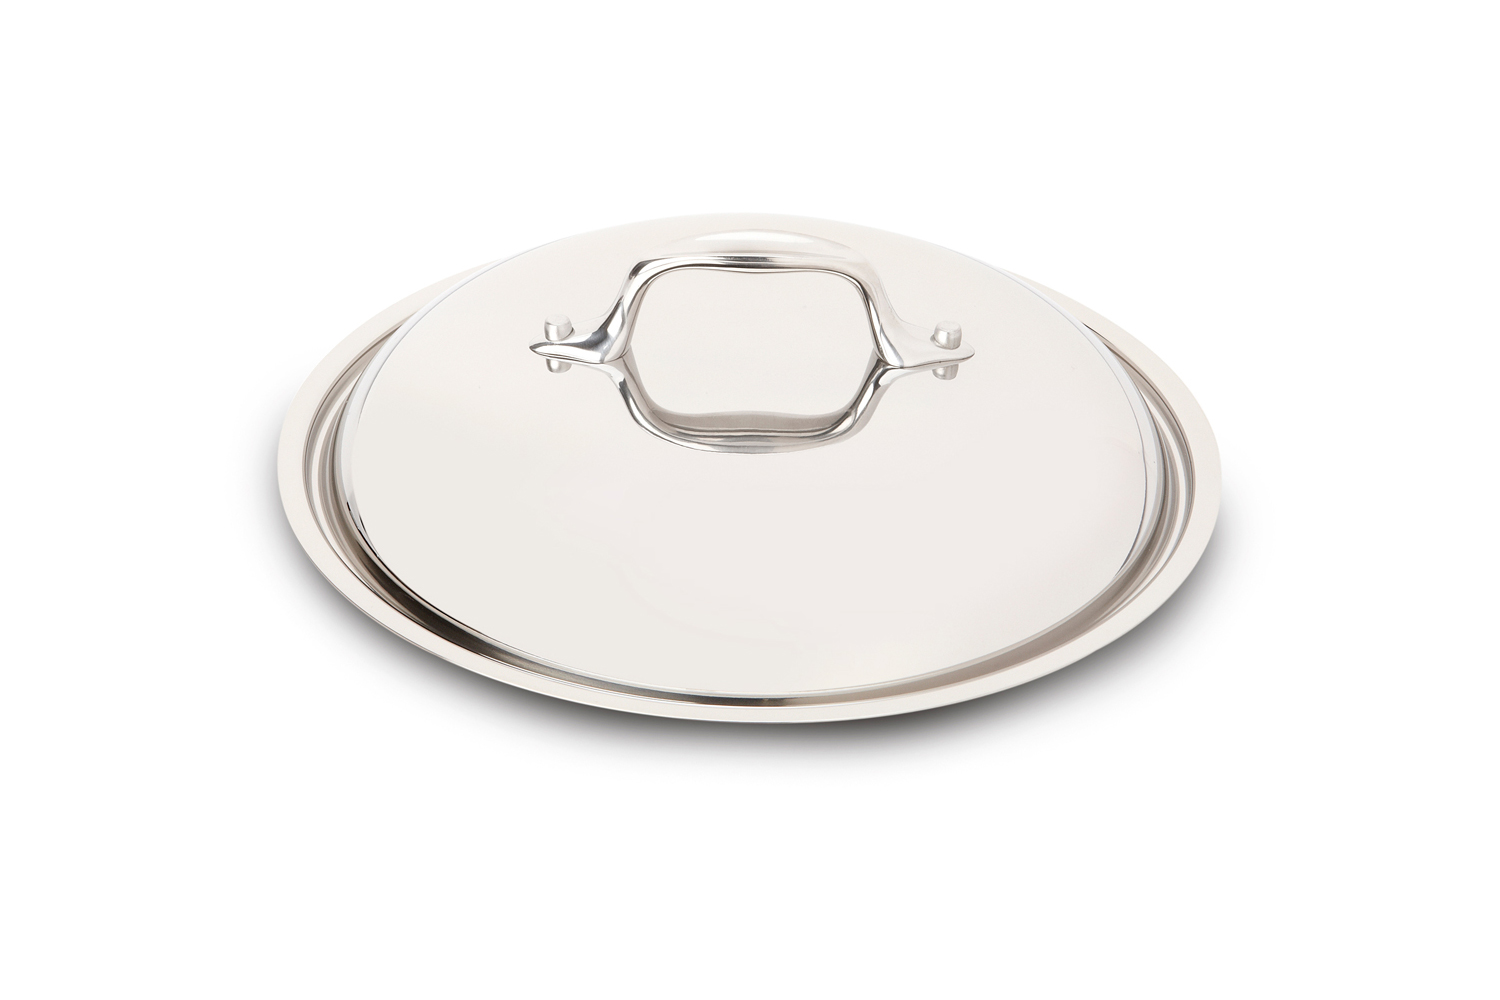 All-Clad Stainless Steel 10 1/2 inch Domed Lid